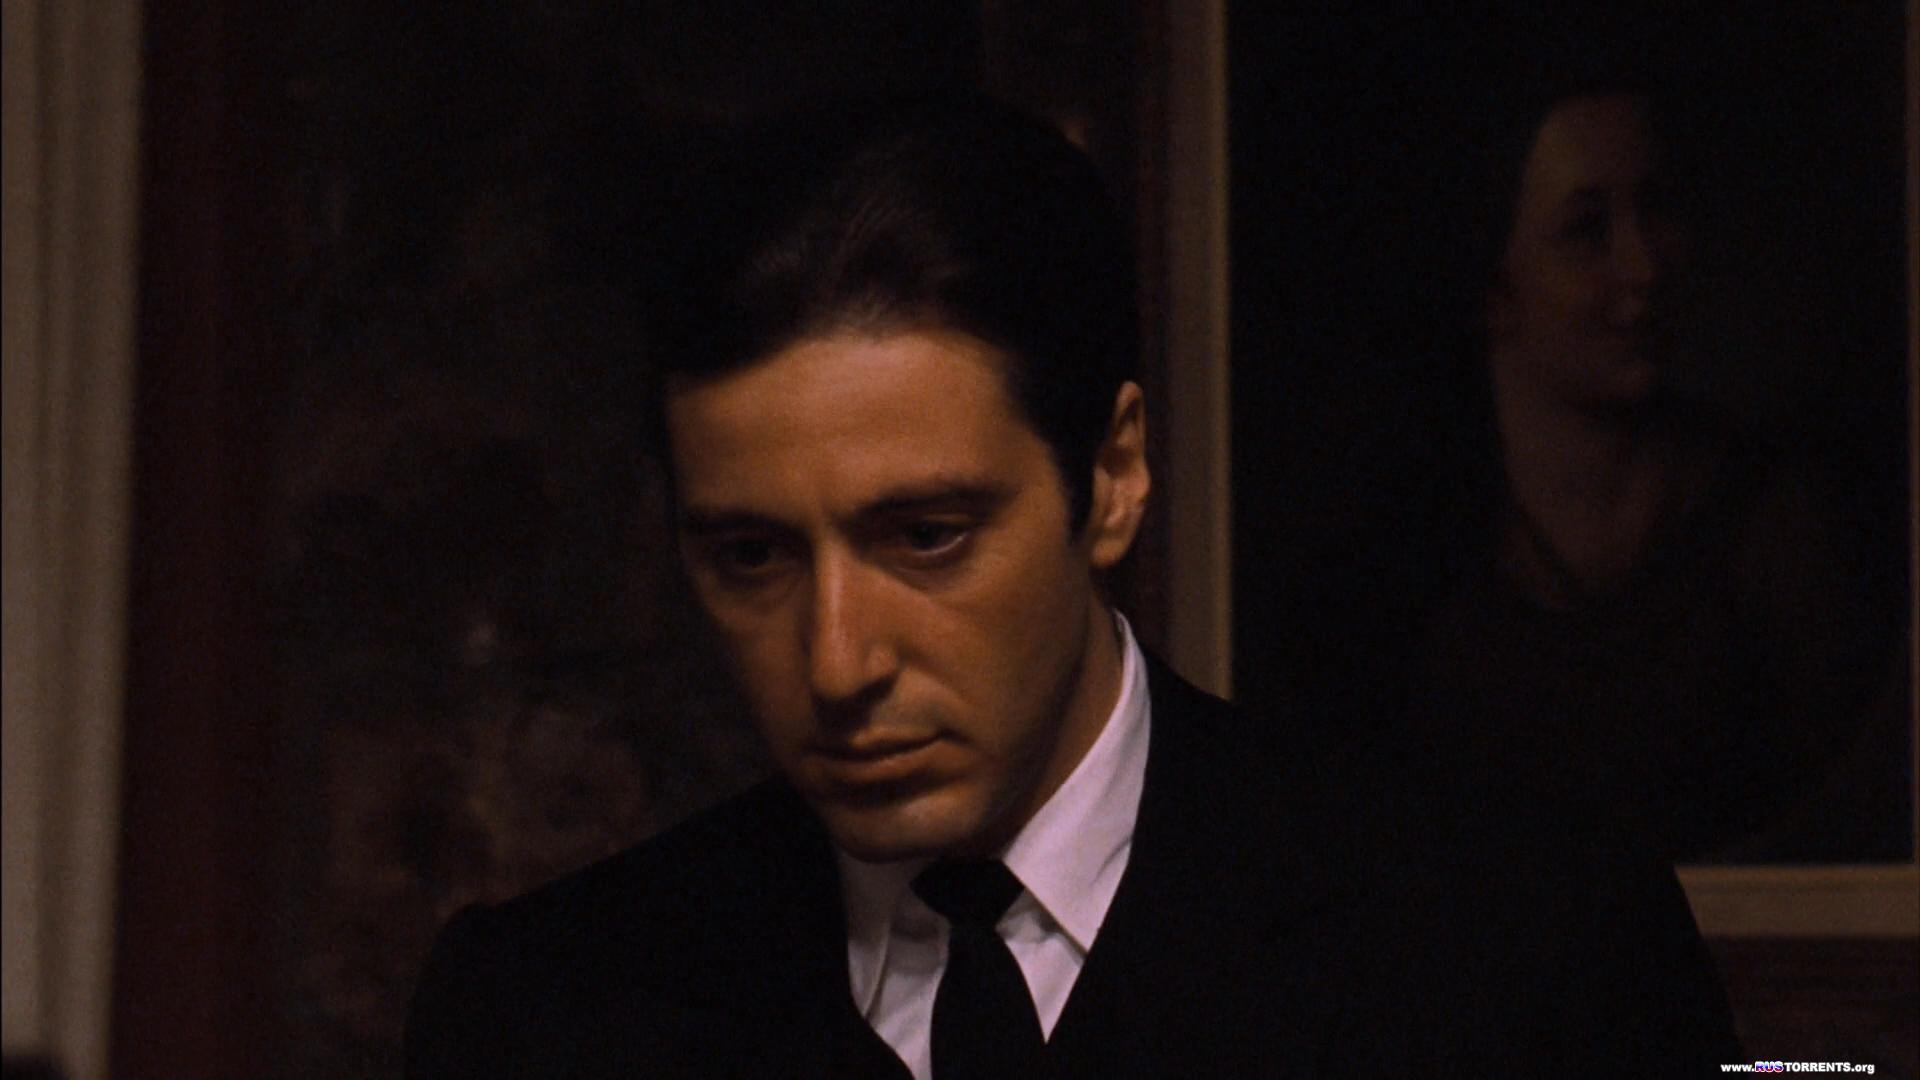 The godfather part ii bluray